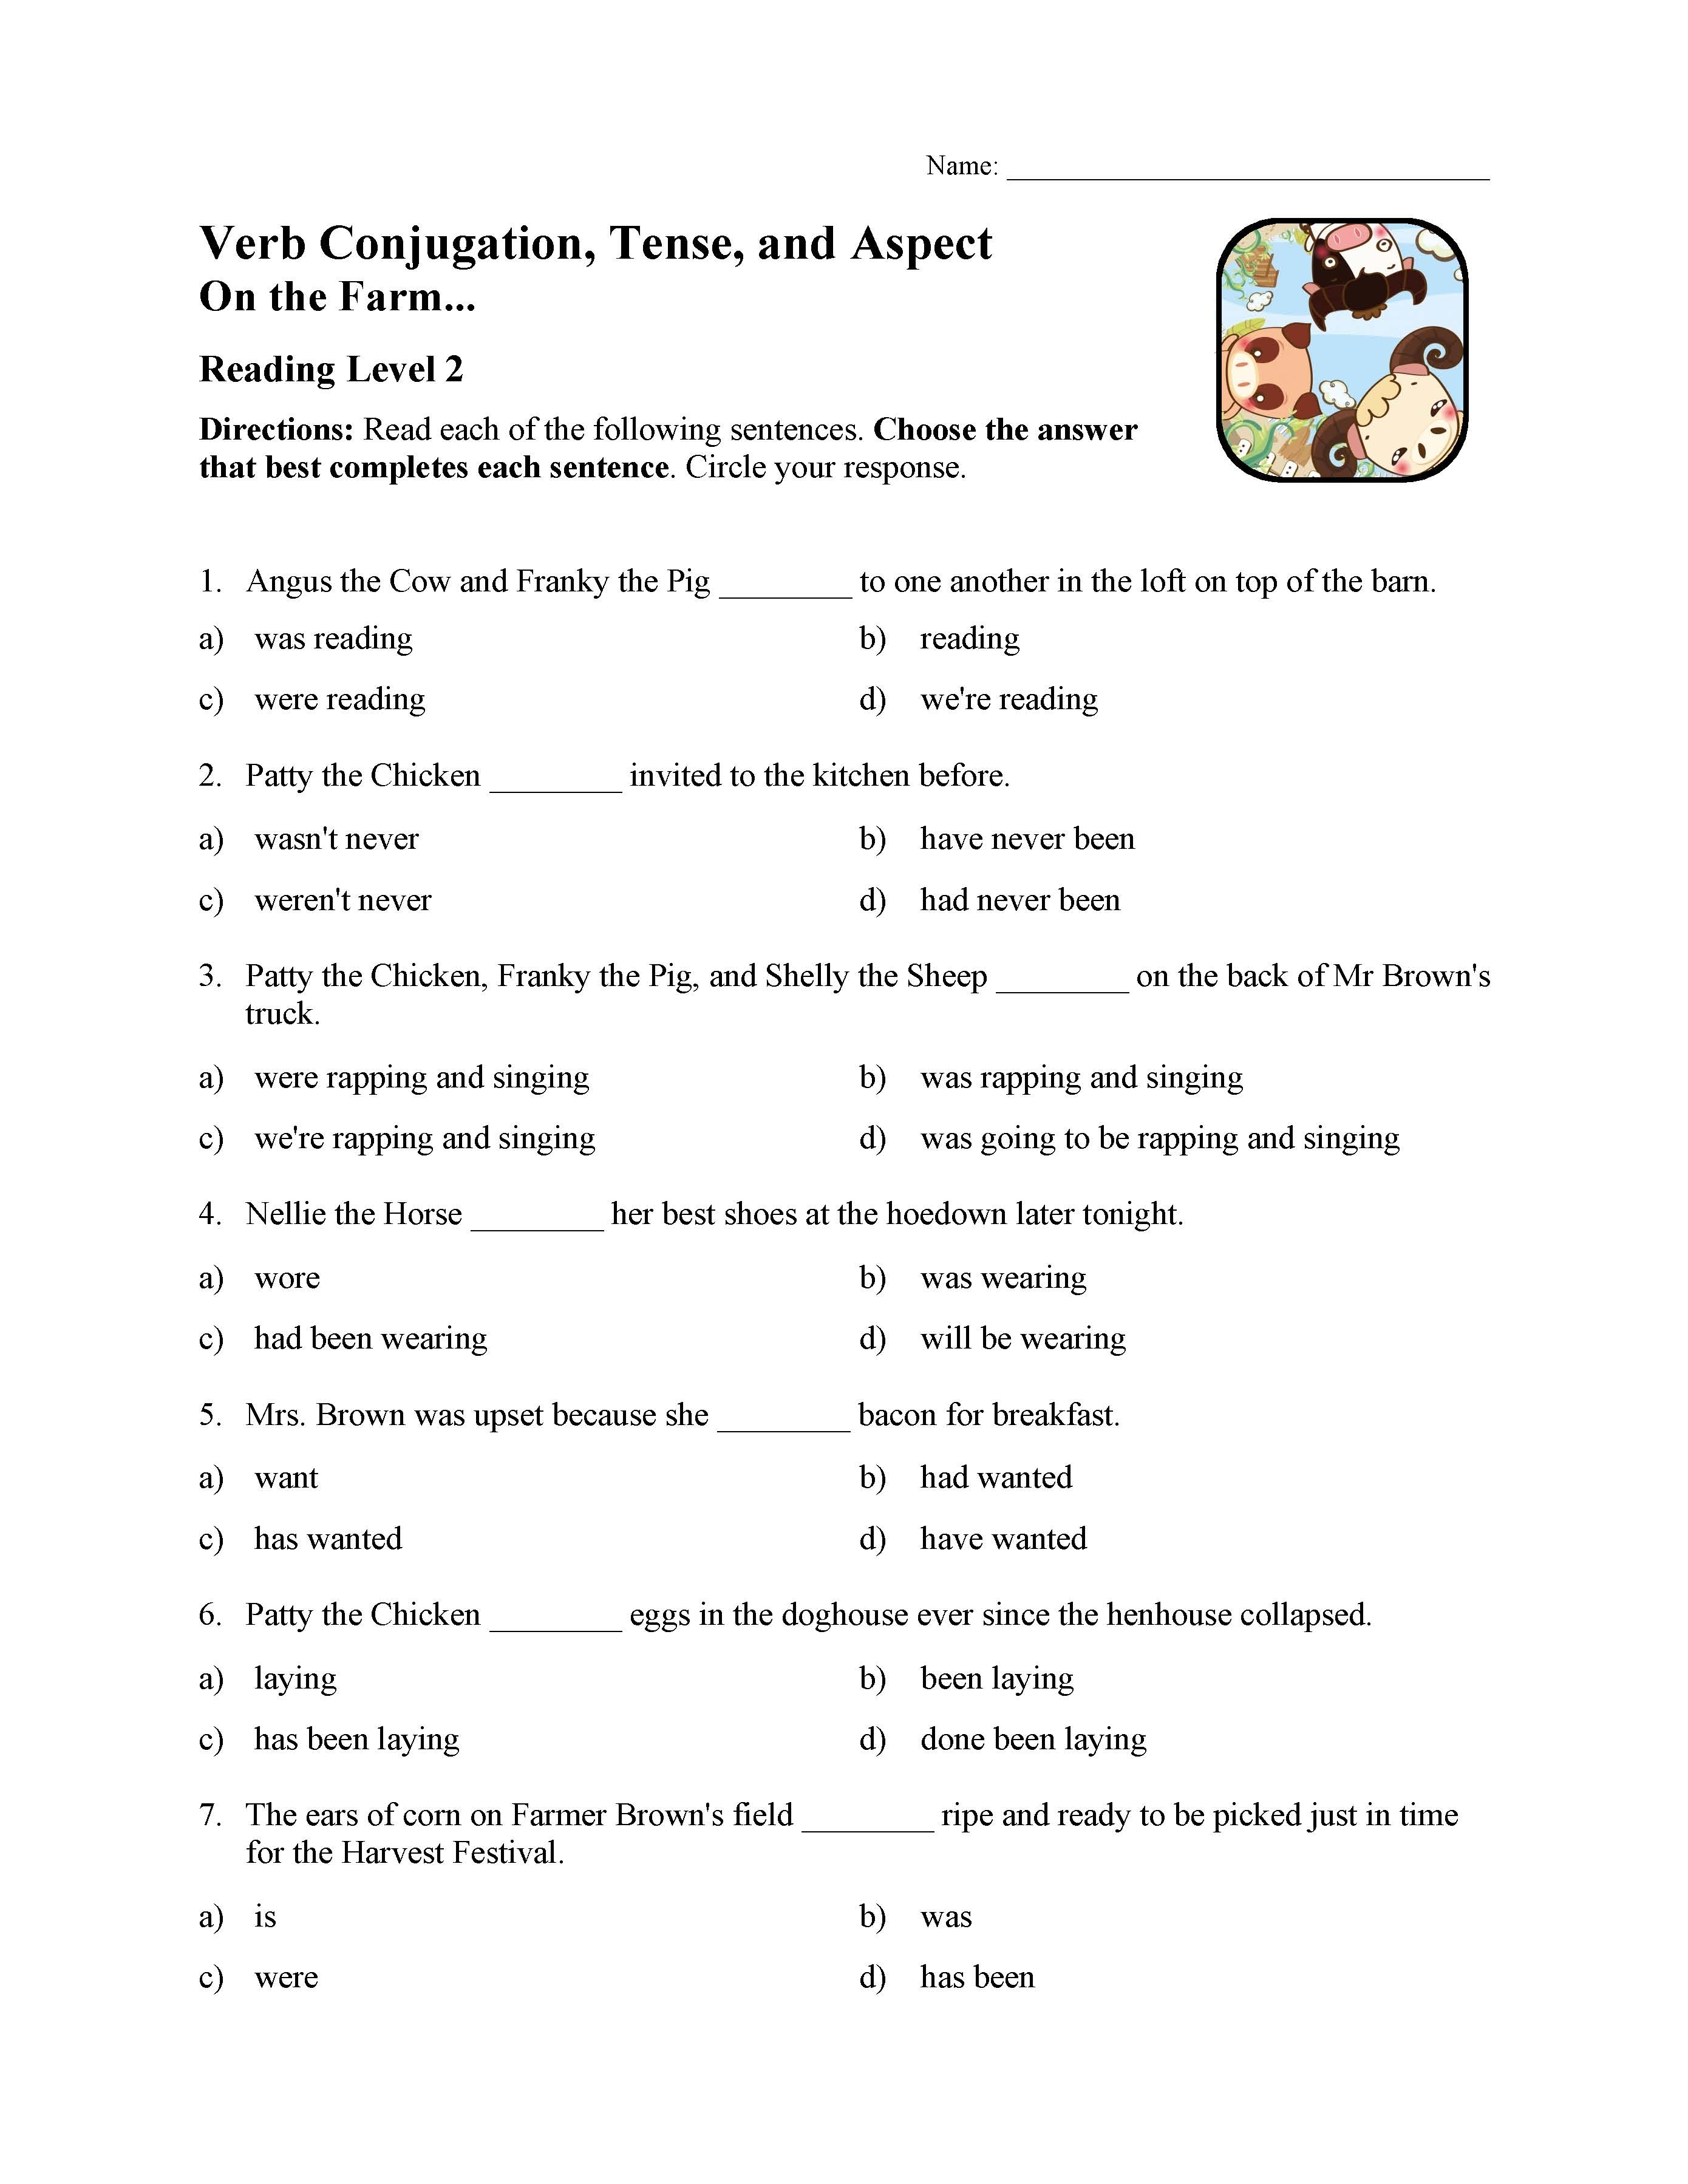 Verb Conjugation Tense And Aspect Test